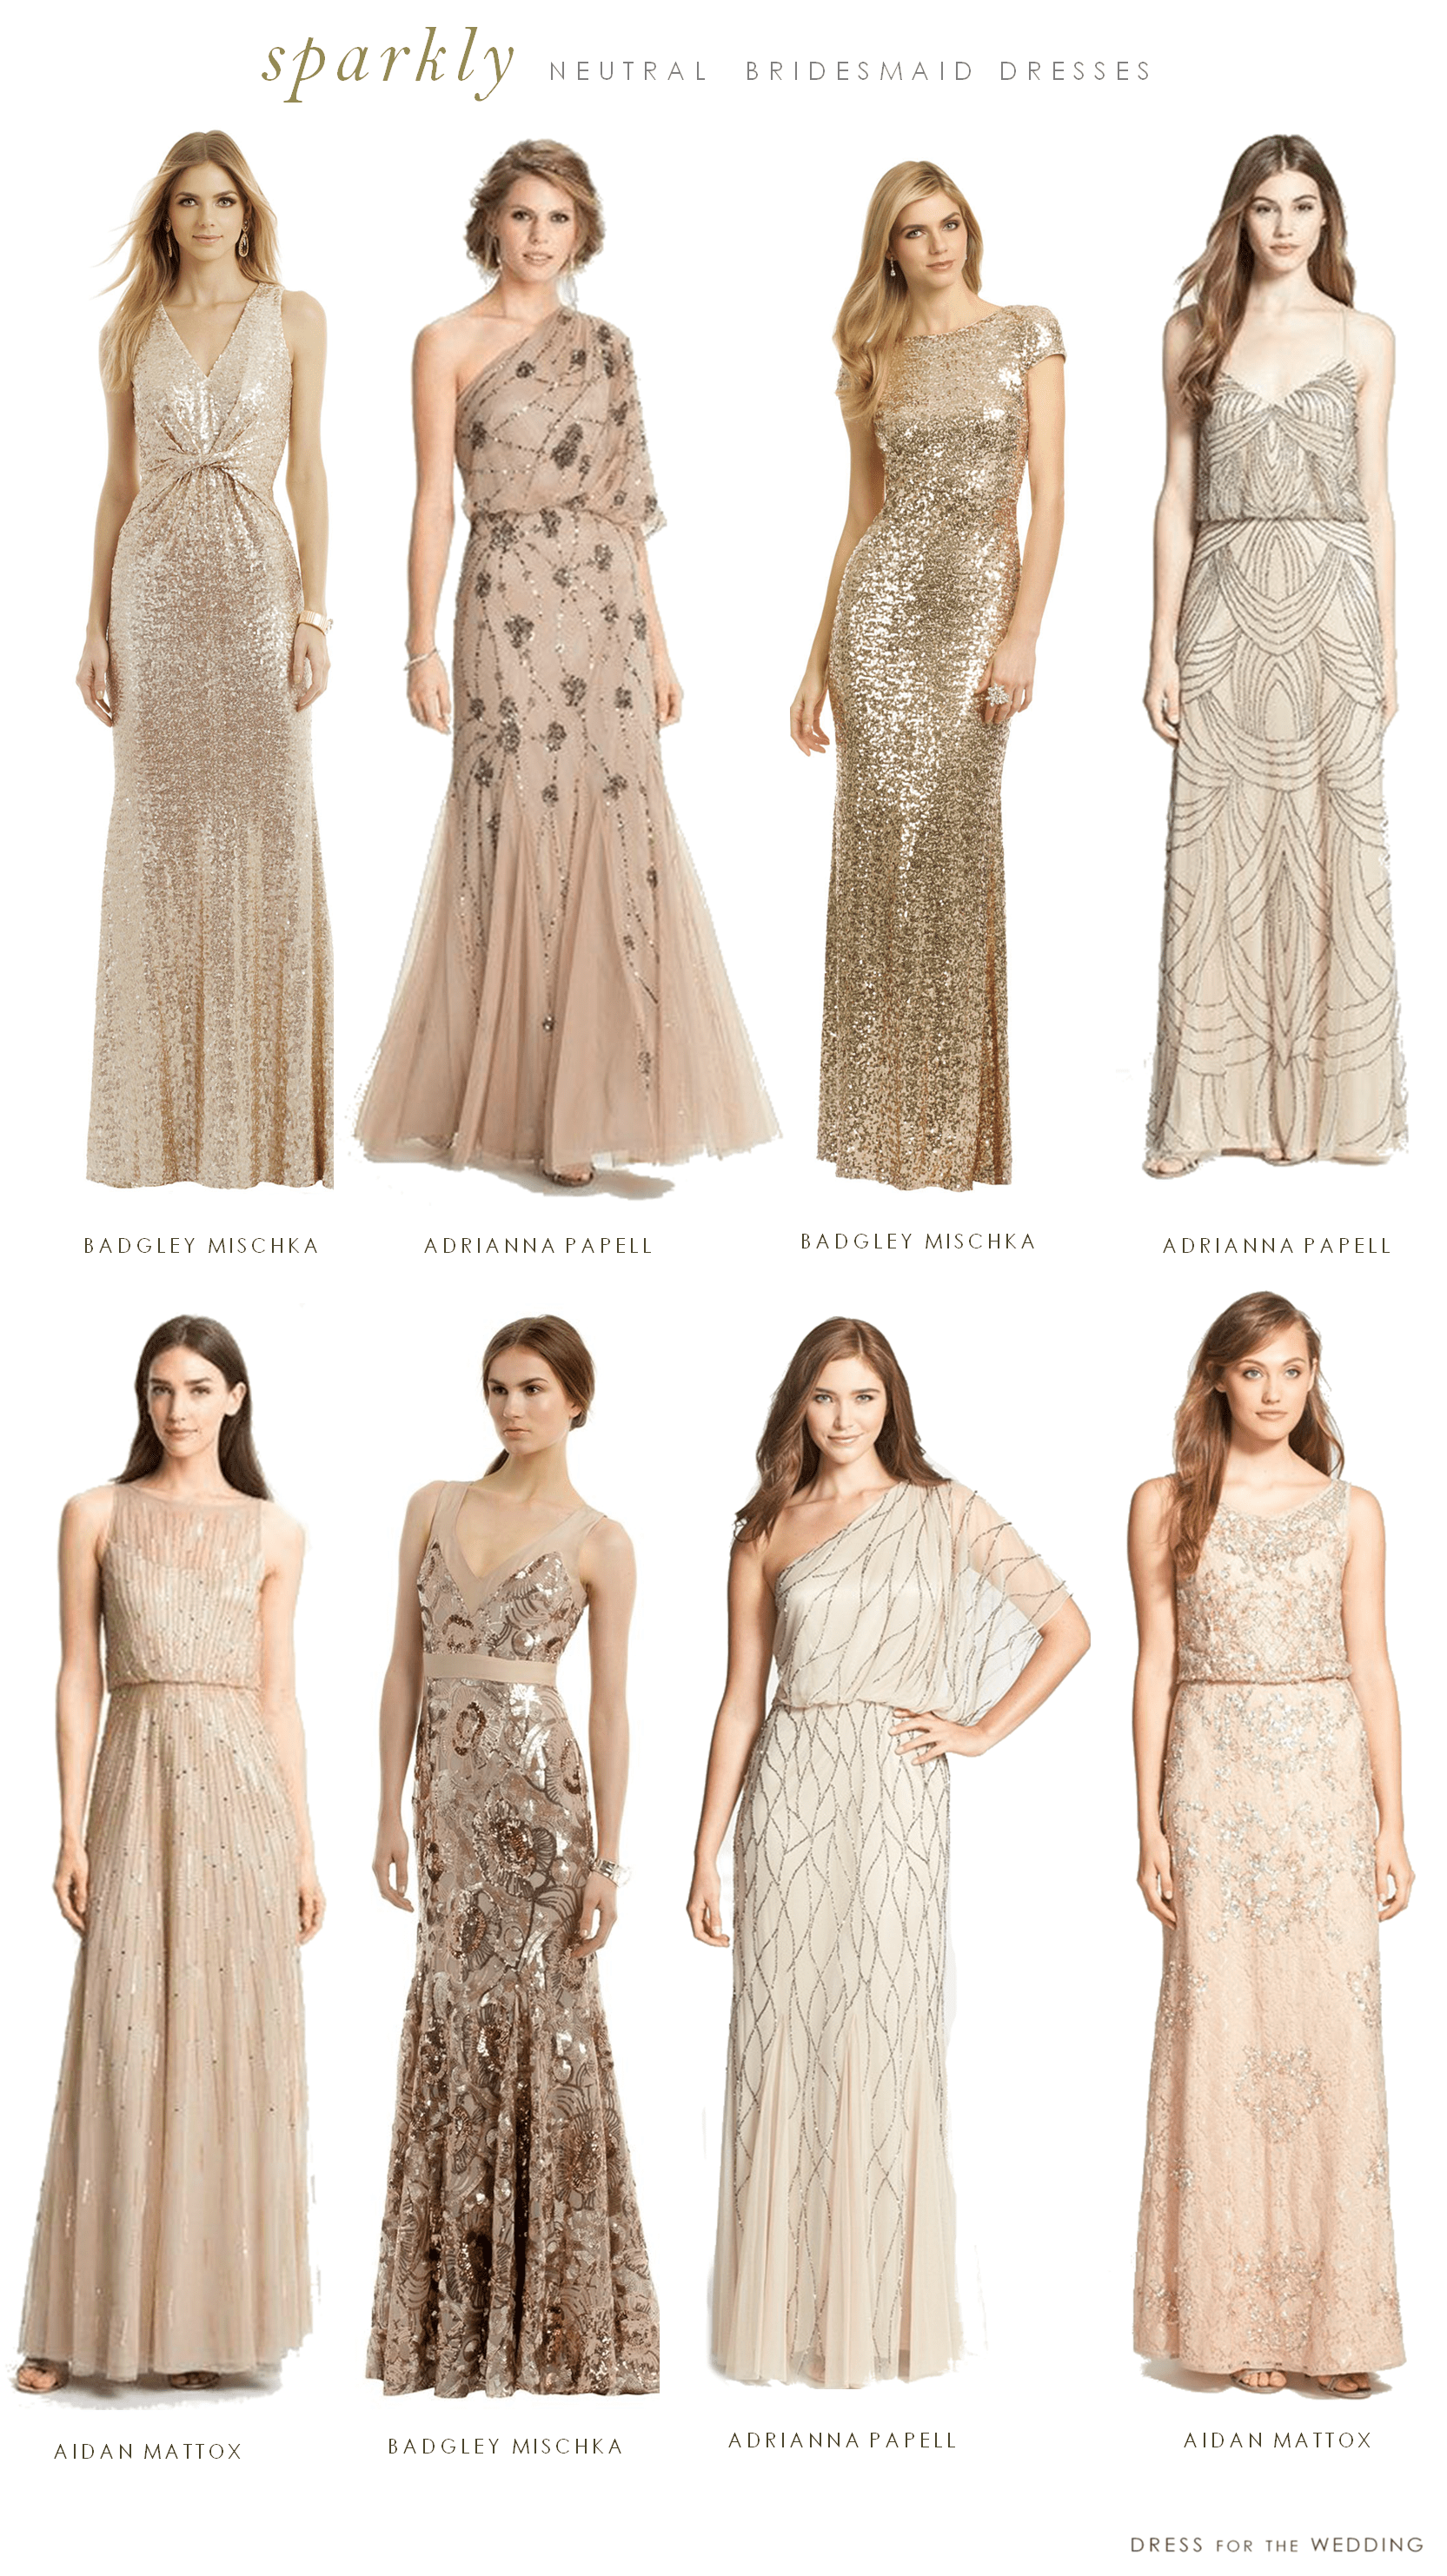 How to mismatch bridesmaid dresses archives mismatched neutral bridesmaid dresses ombrellifo Choice Image